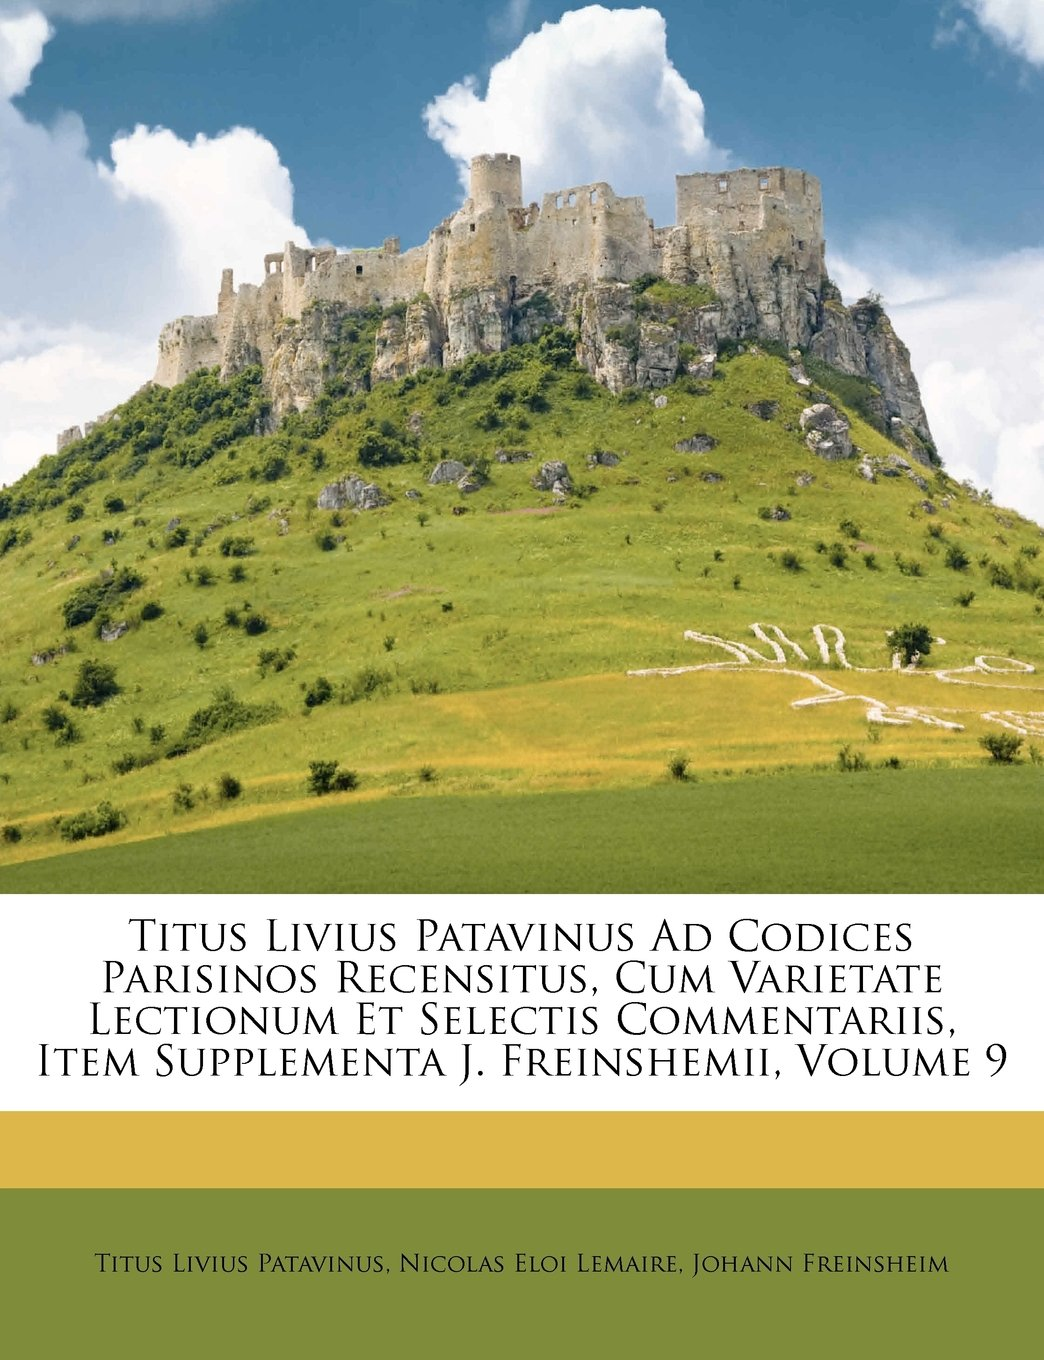 Titus Livius Patavinus Ad Codices Parisinos Recensitus, Cum Varietate Lectionum Et Selectis Commentariis, Item Supplementa J. Freinshemii, Volume 9 (Latin Edition) ebook